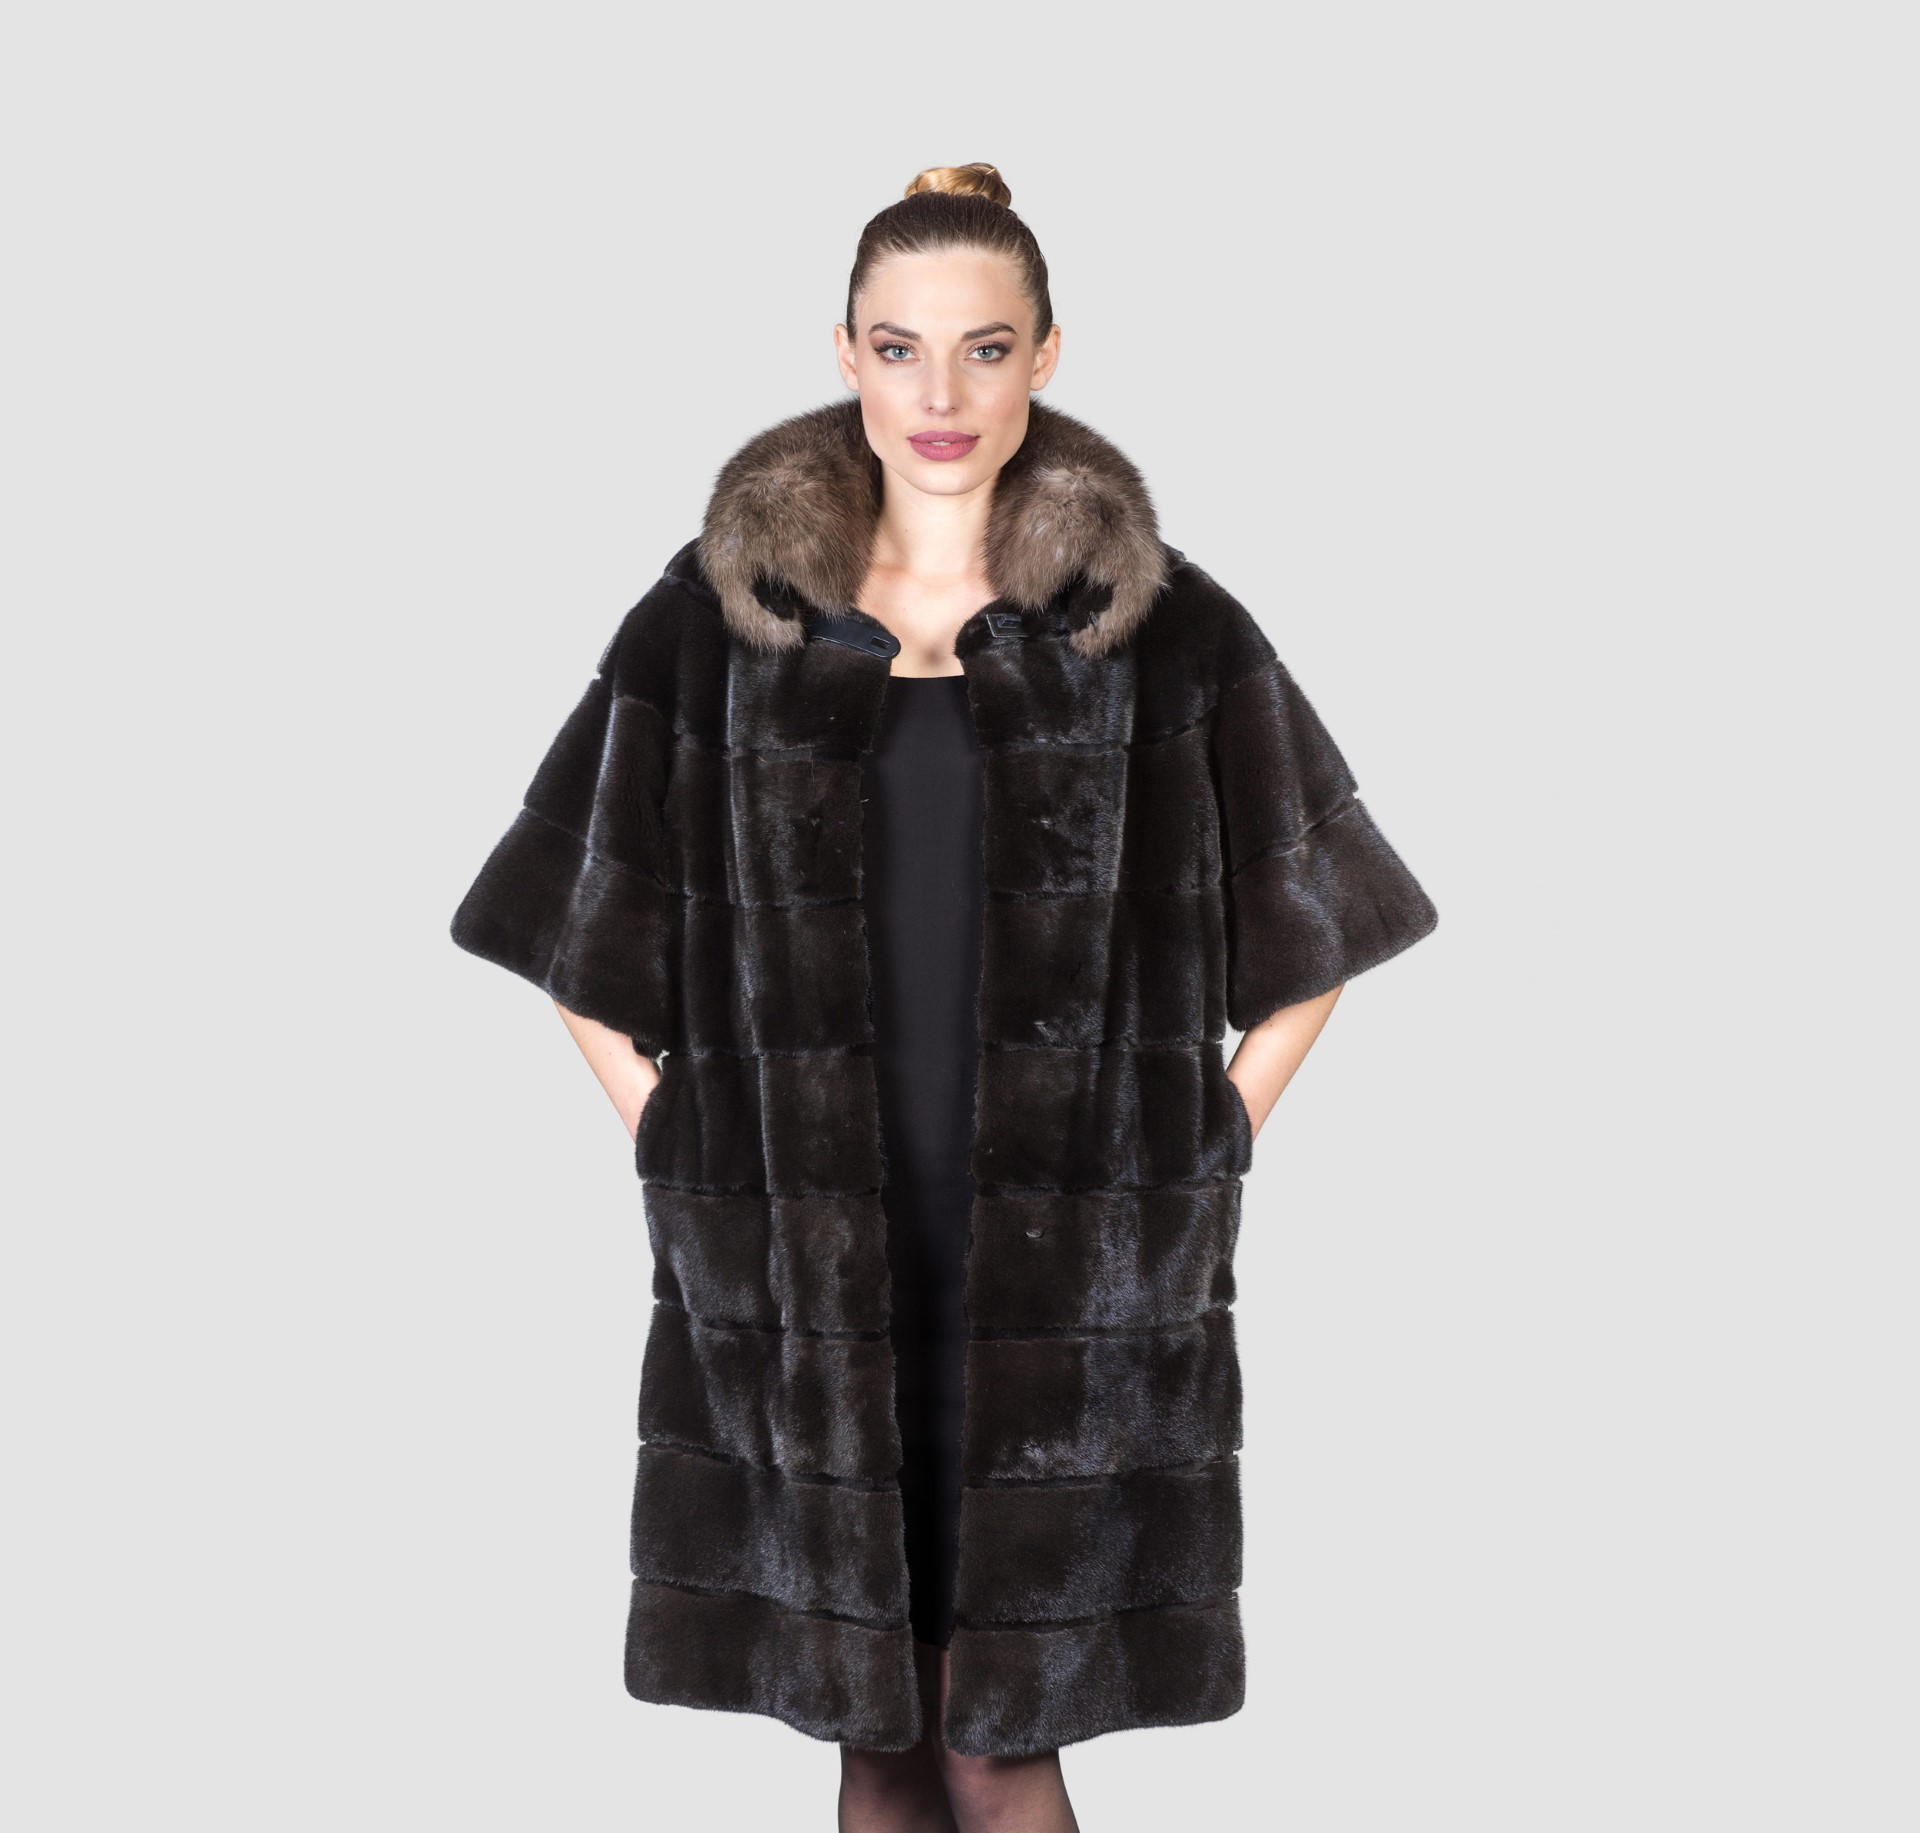 Black Mink Fur Coat With Sable Collar - Haute Acorn